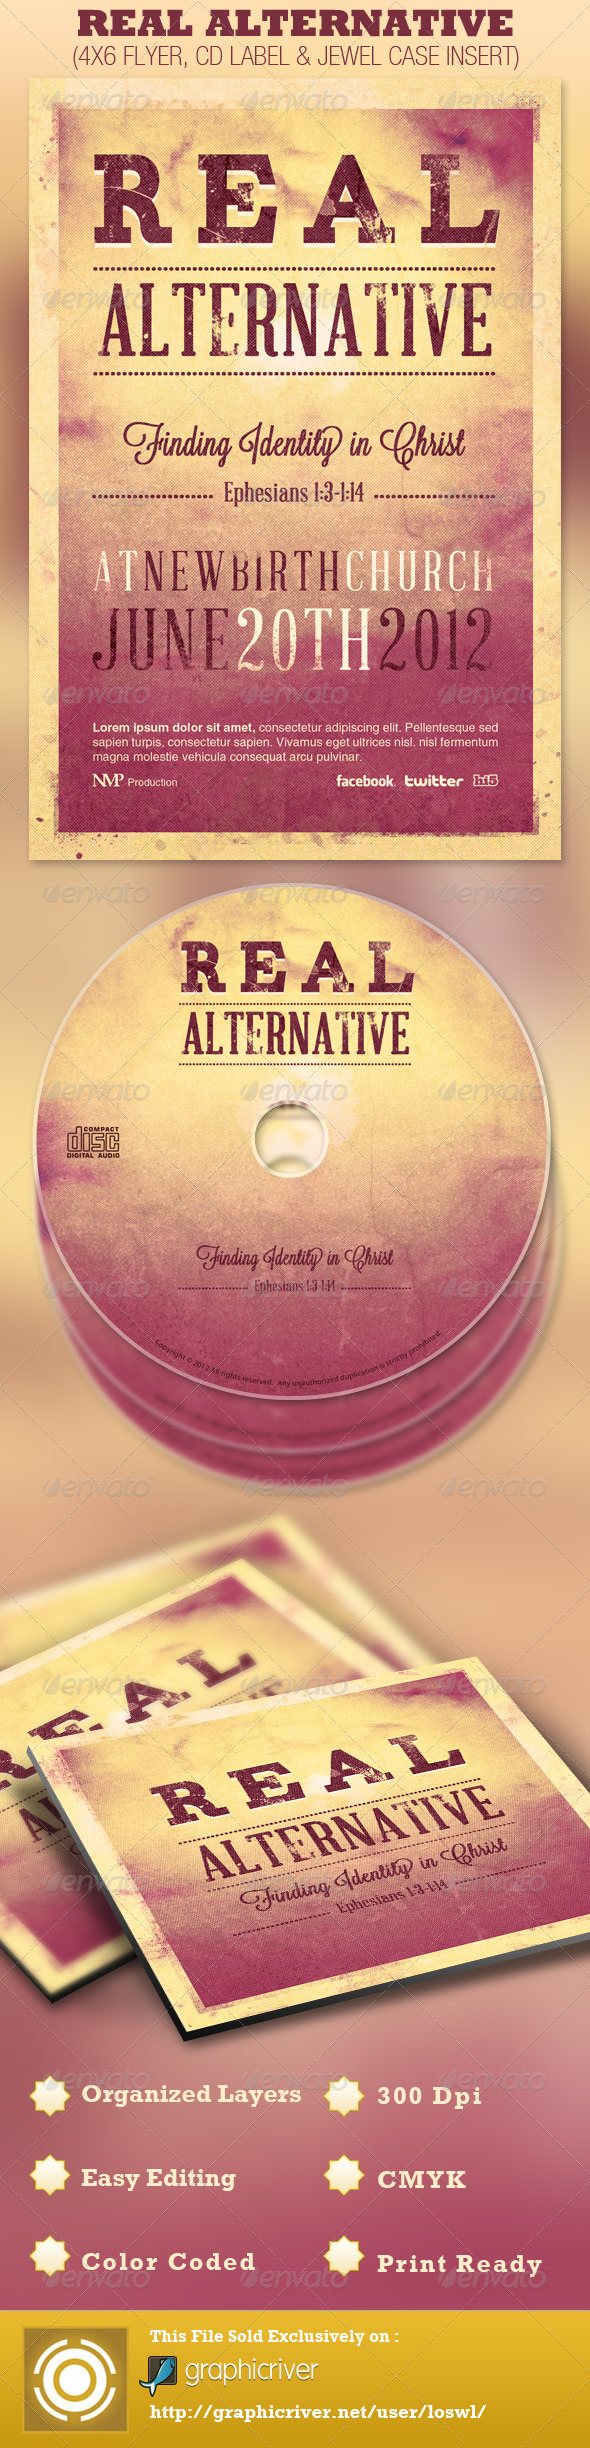 Real Alternative Flyer and CD Template - Church Flyers